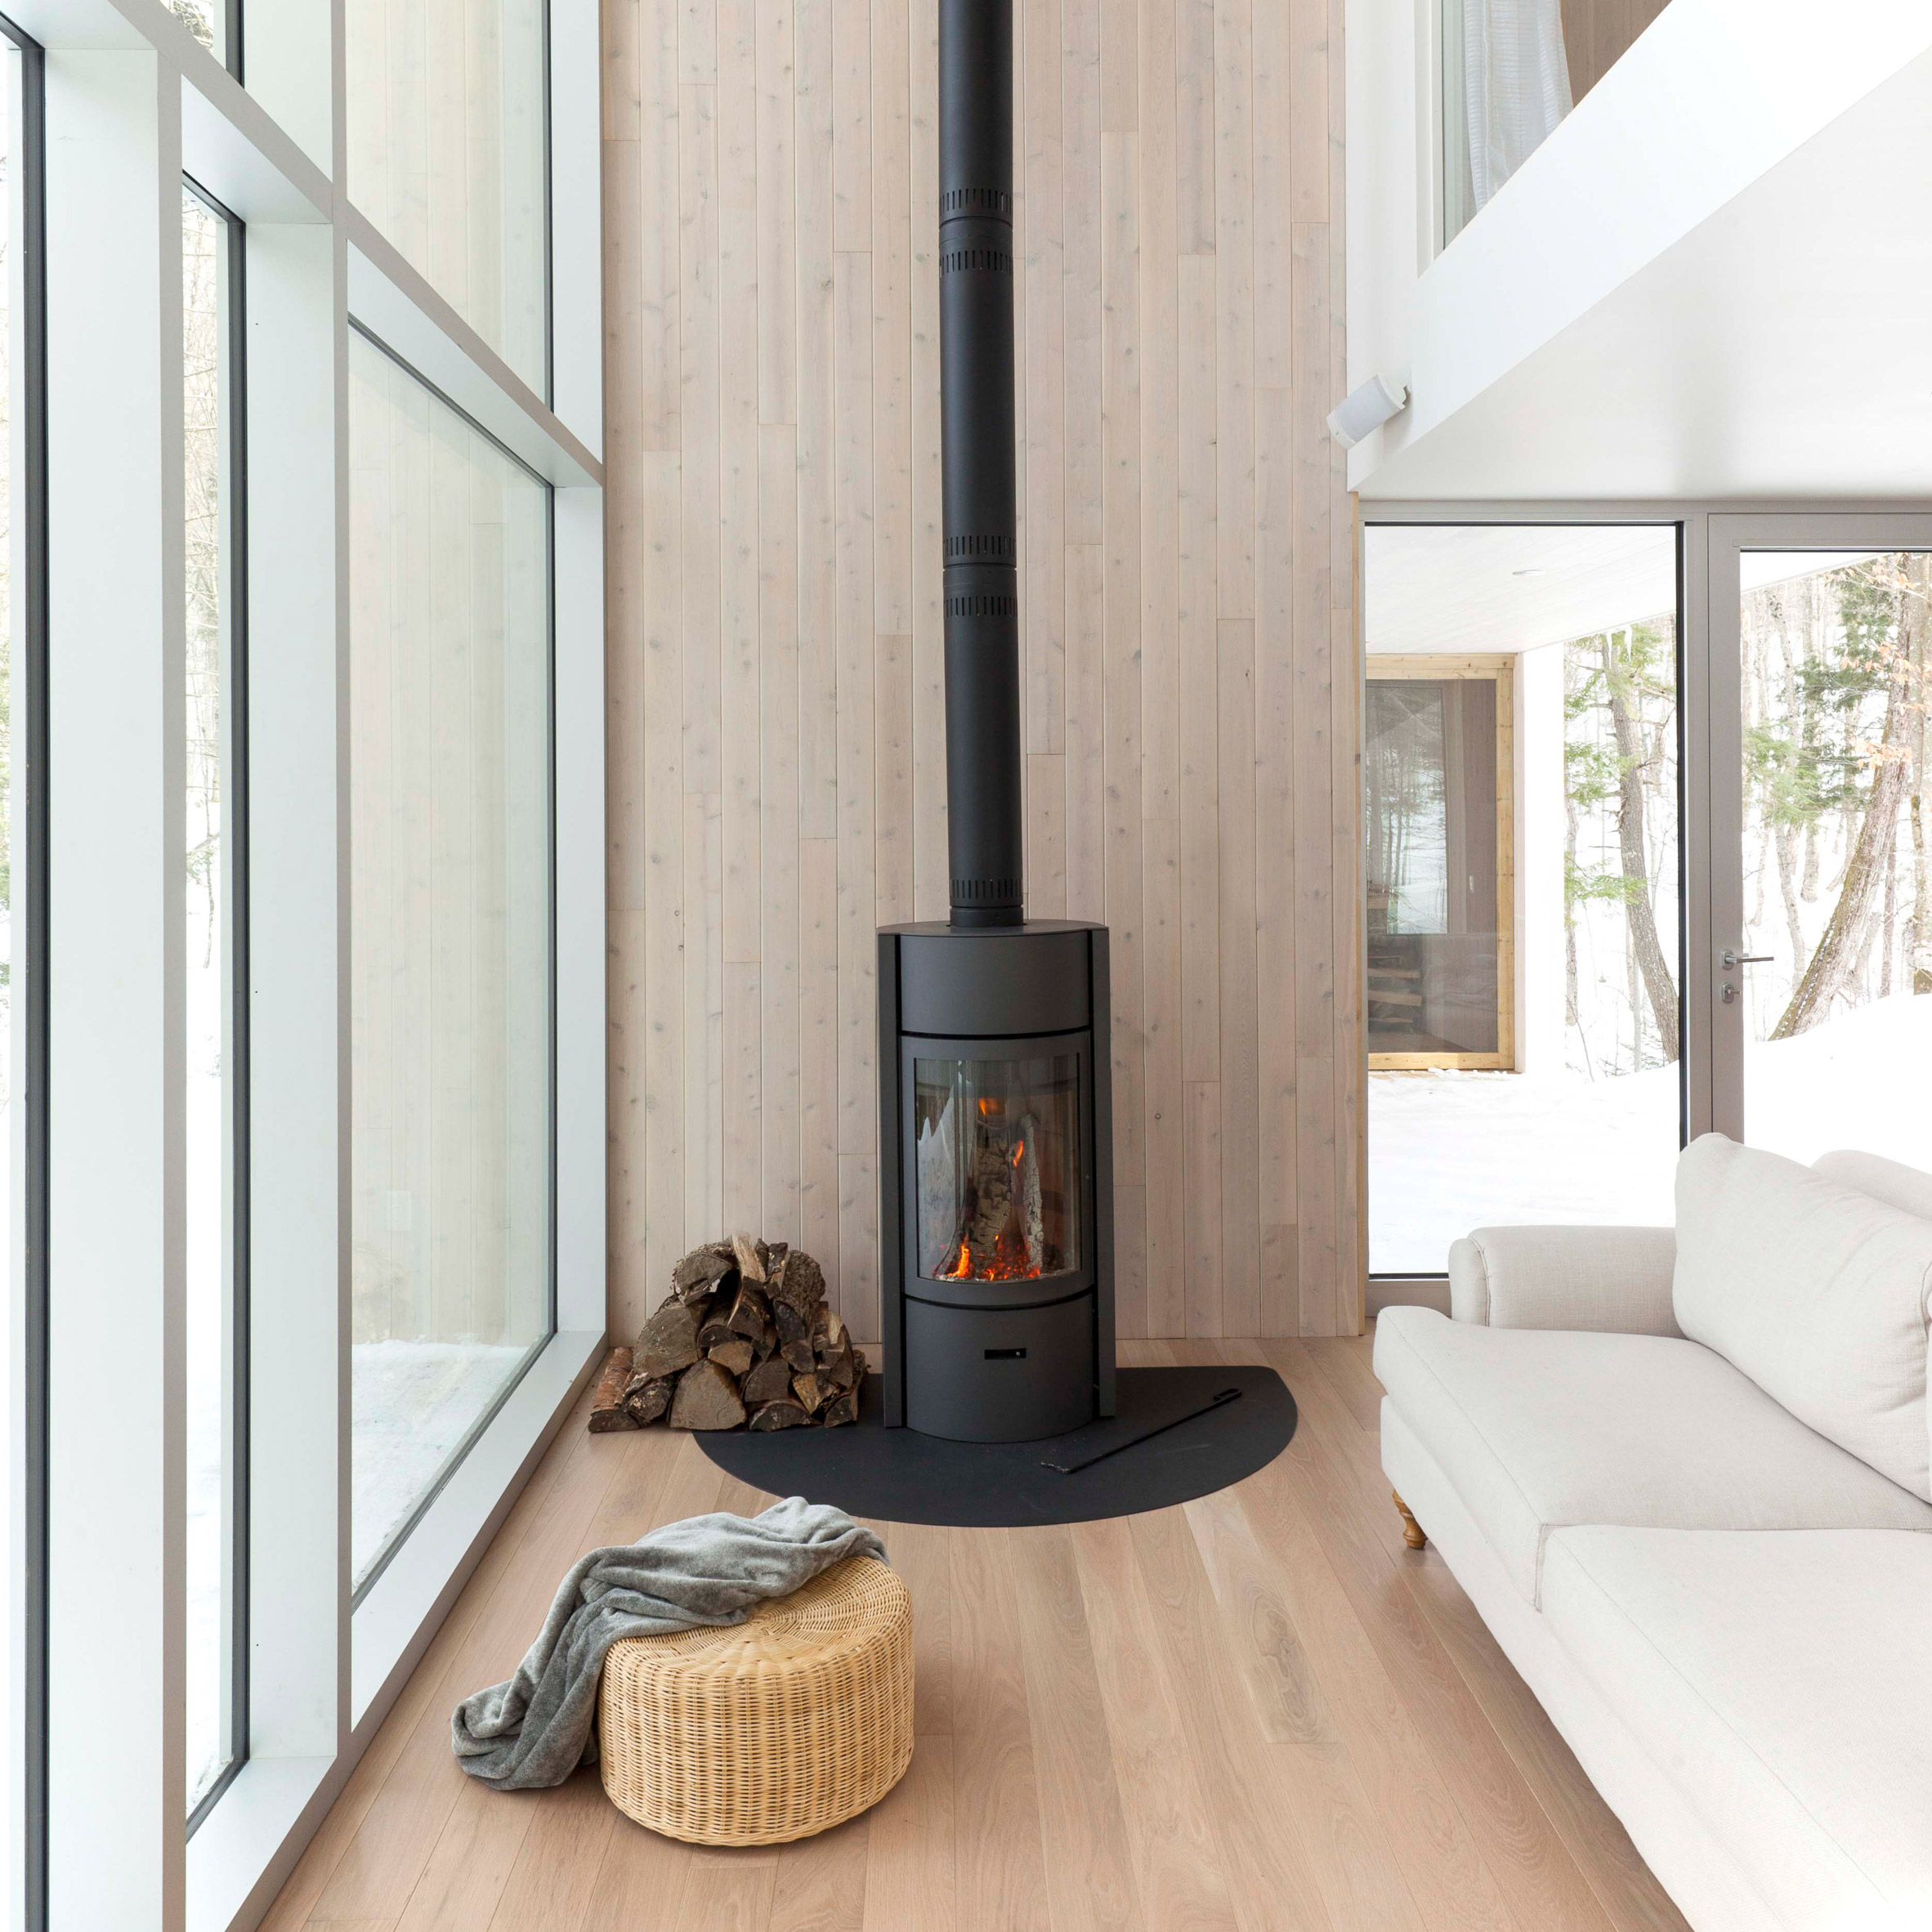 15 Cozy Homes With Fireplaces From Pinterest Boards